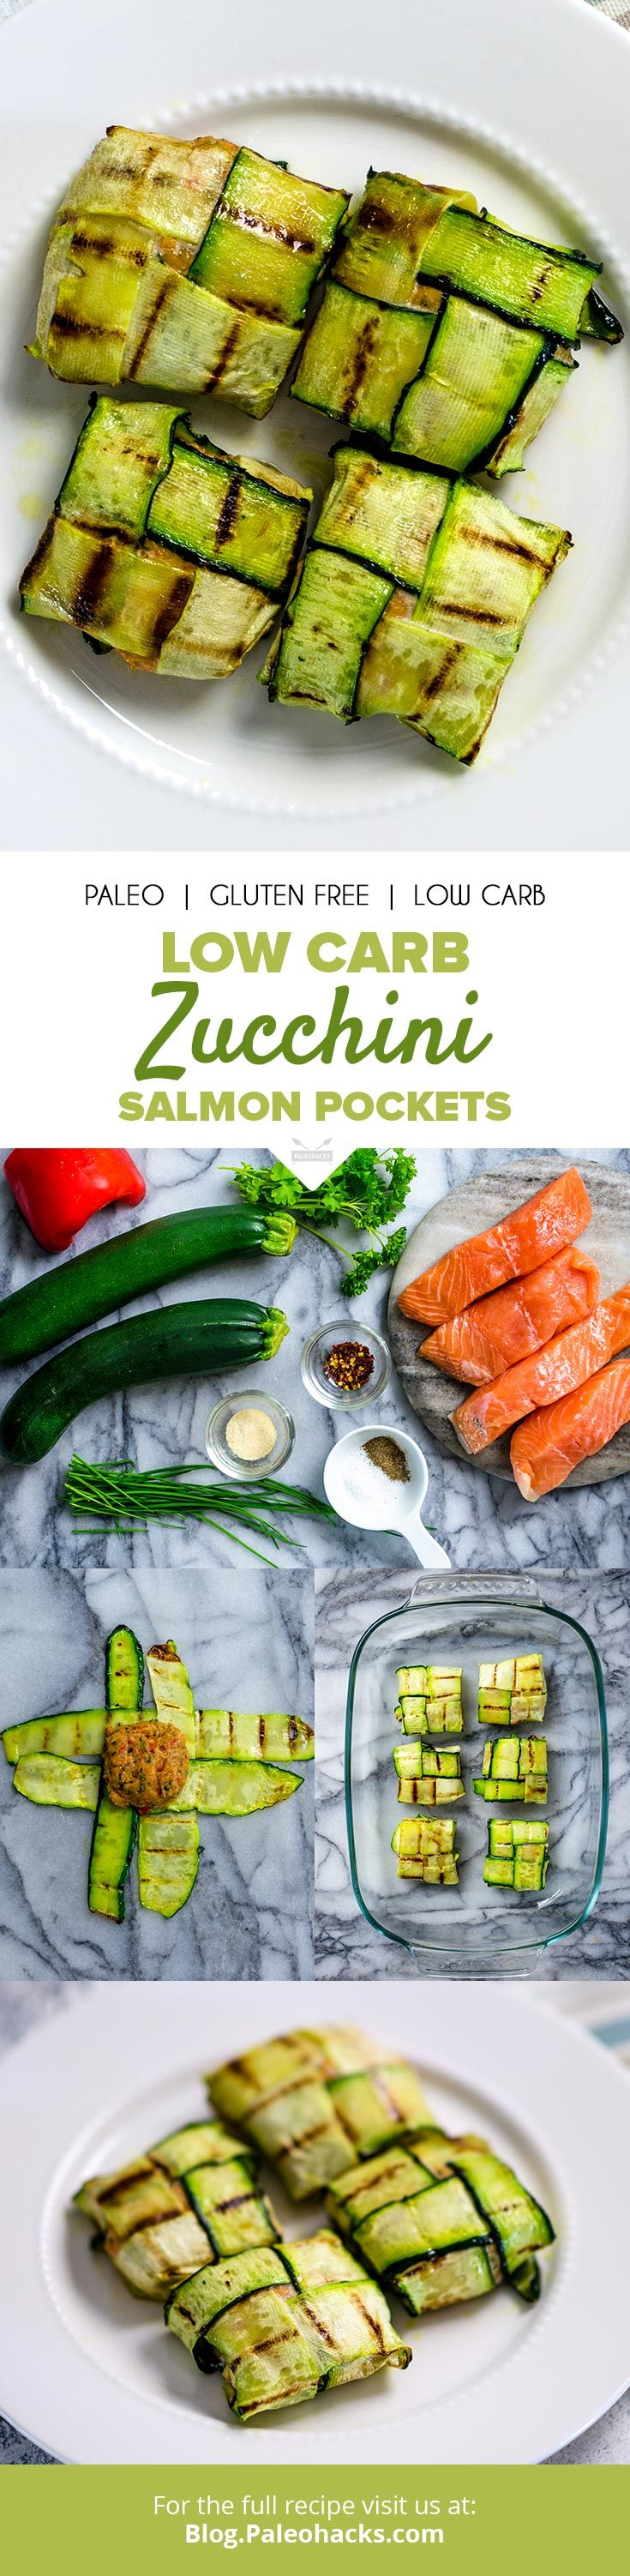 Impress your guests with these easy, elegant herb-filled salmon pockets served in a grilled zucchini weave. Get the full recipe here: http://paleo.co/zucchinisalmonpockets